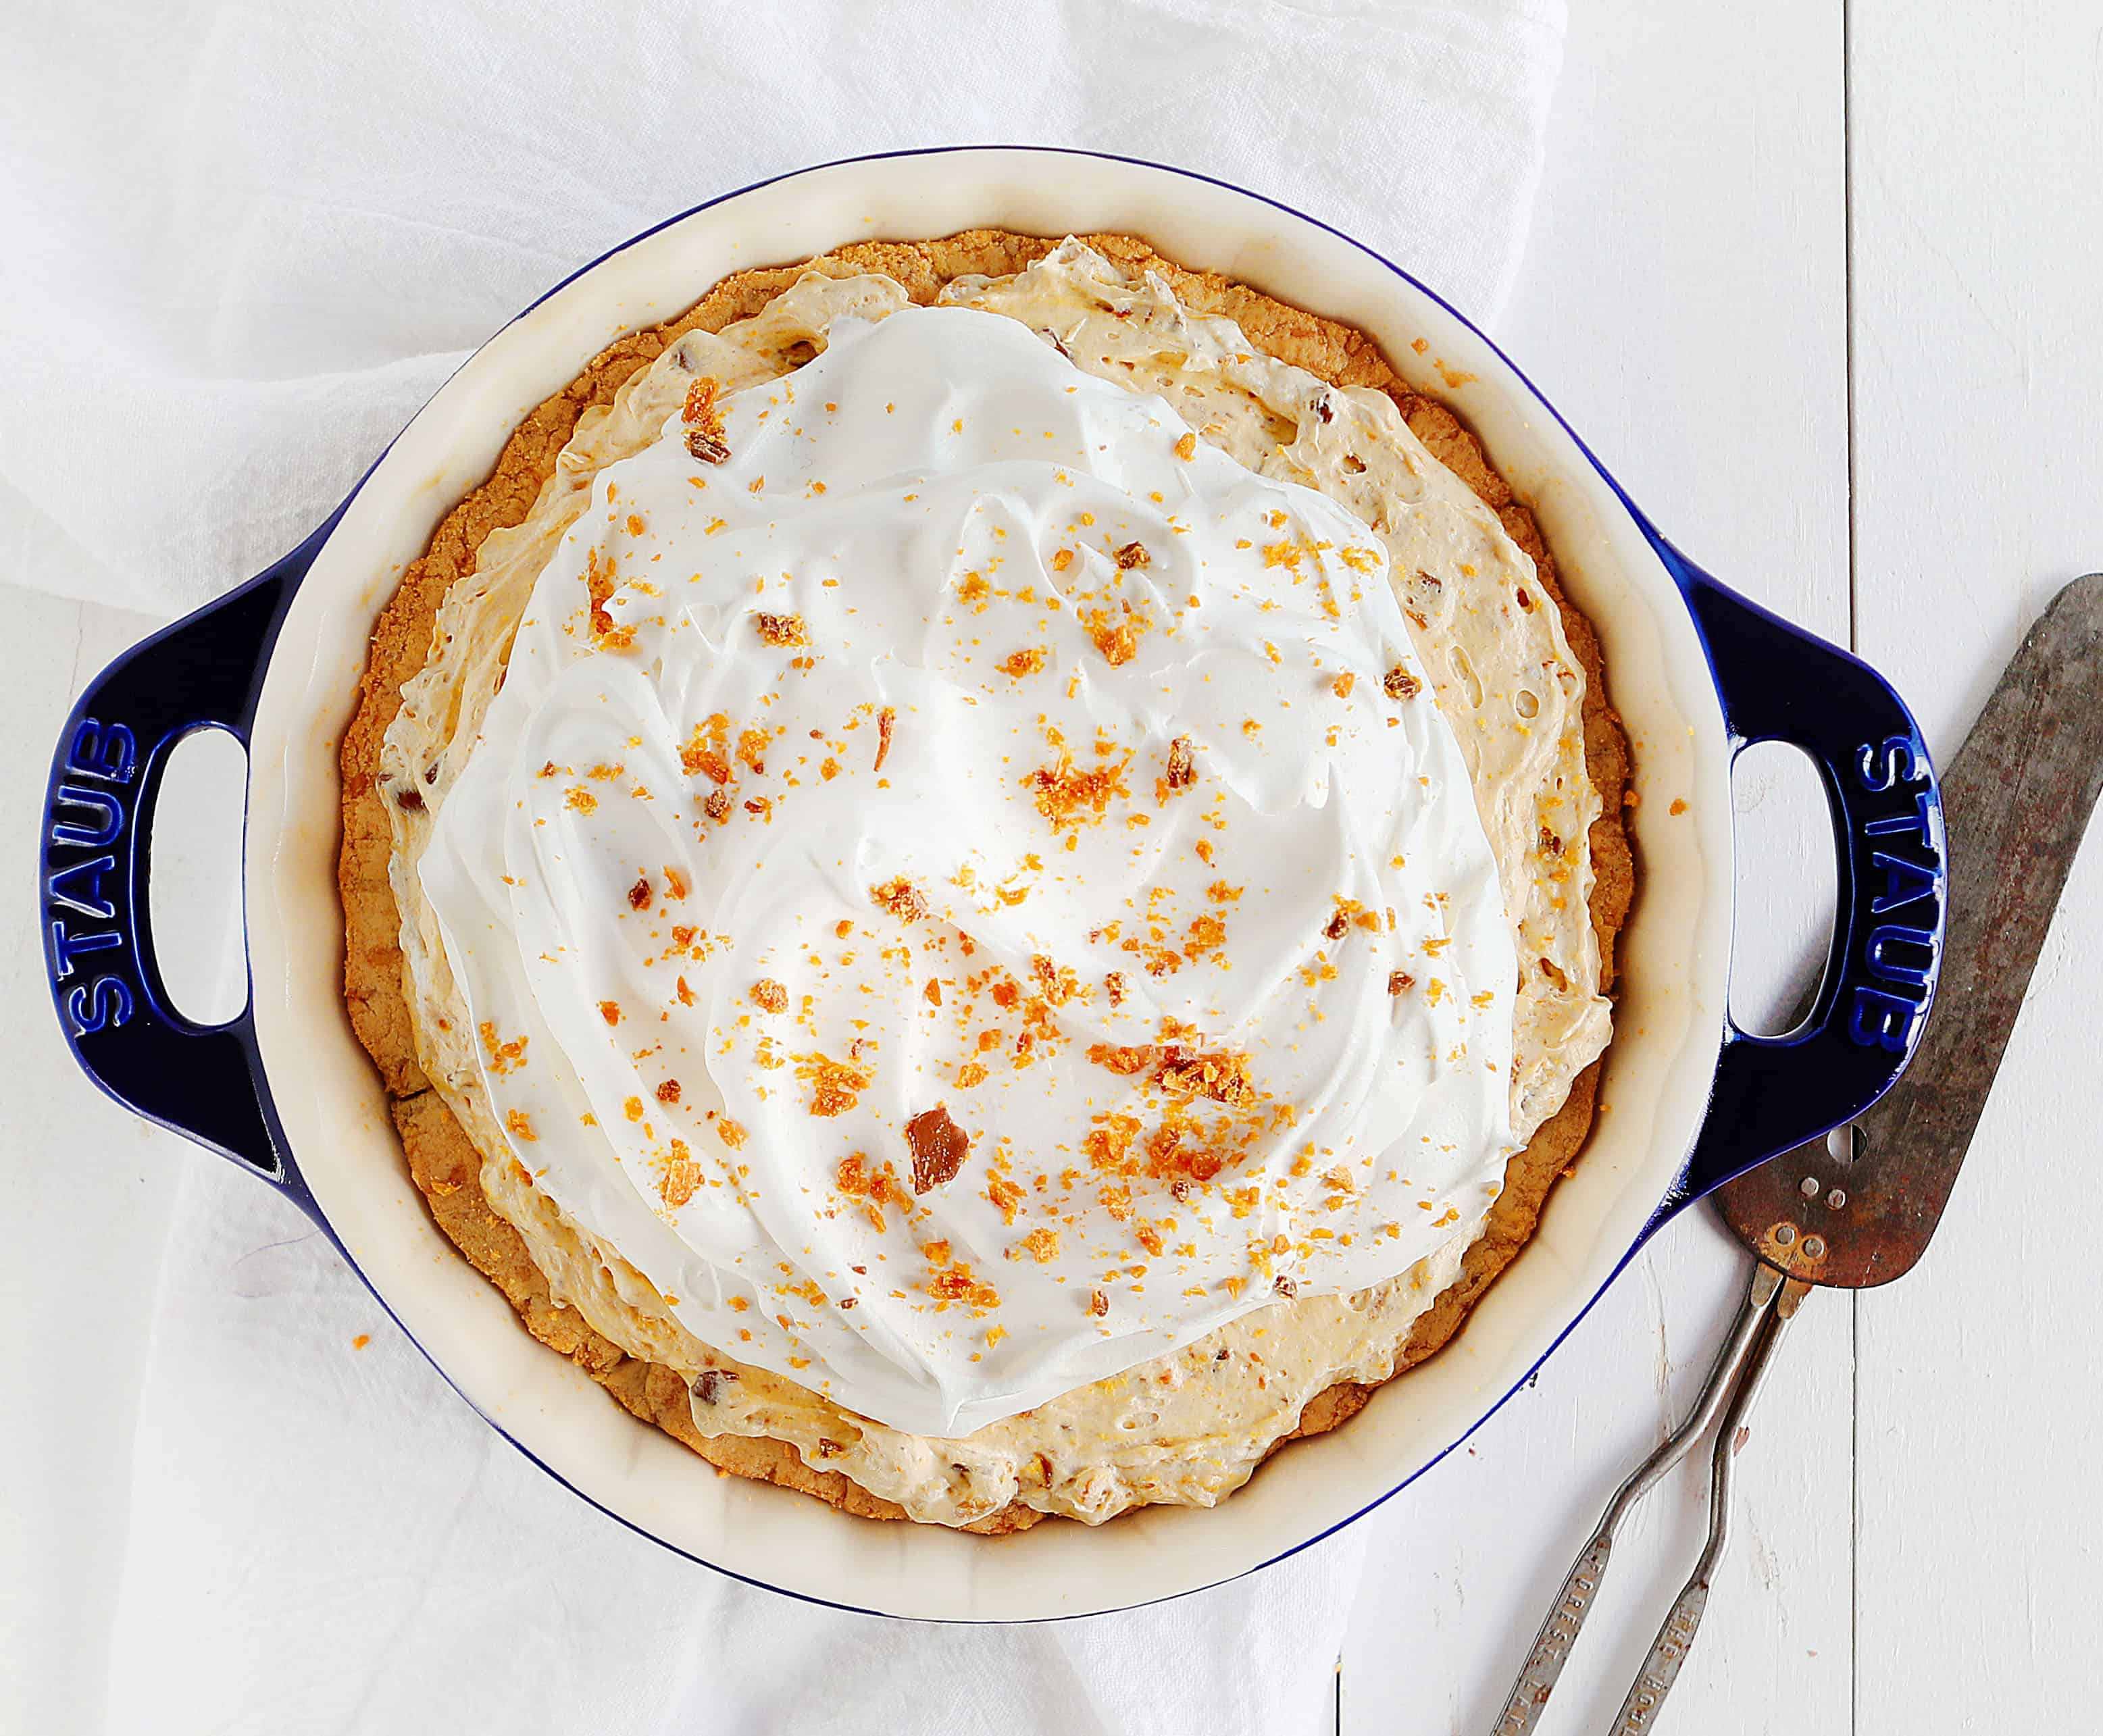 How to Make Butterfinger Pie